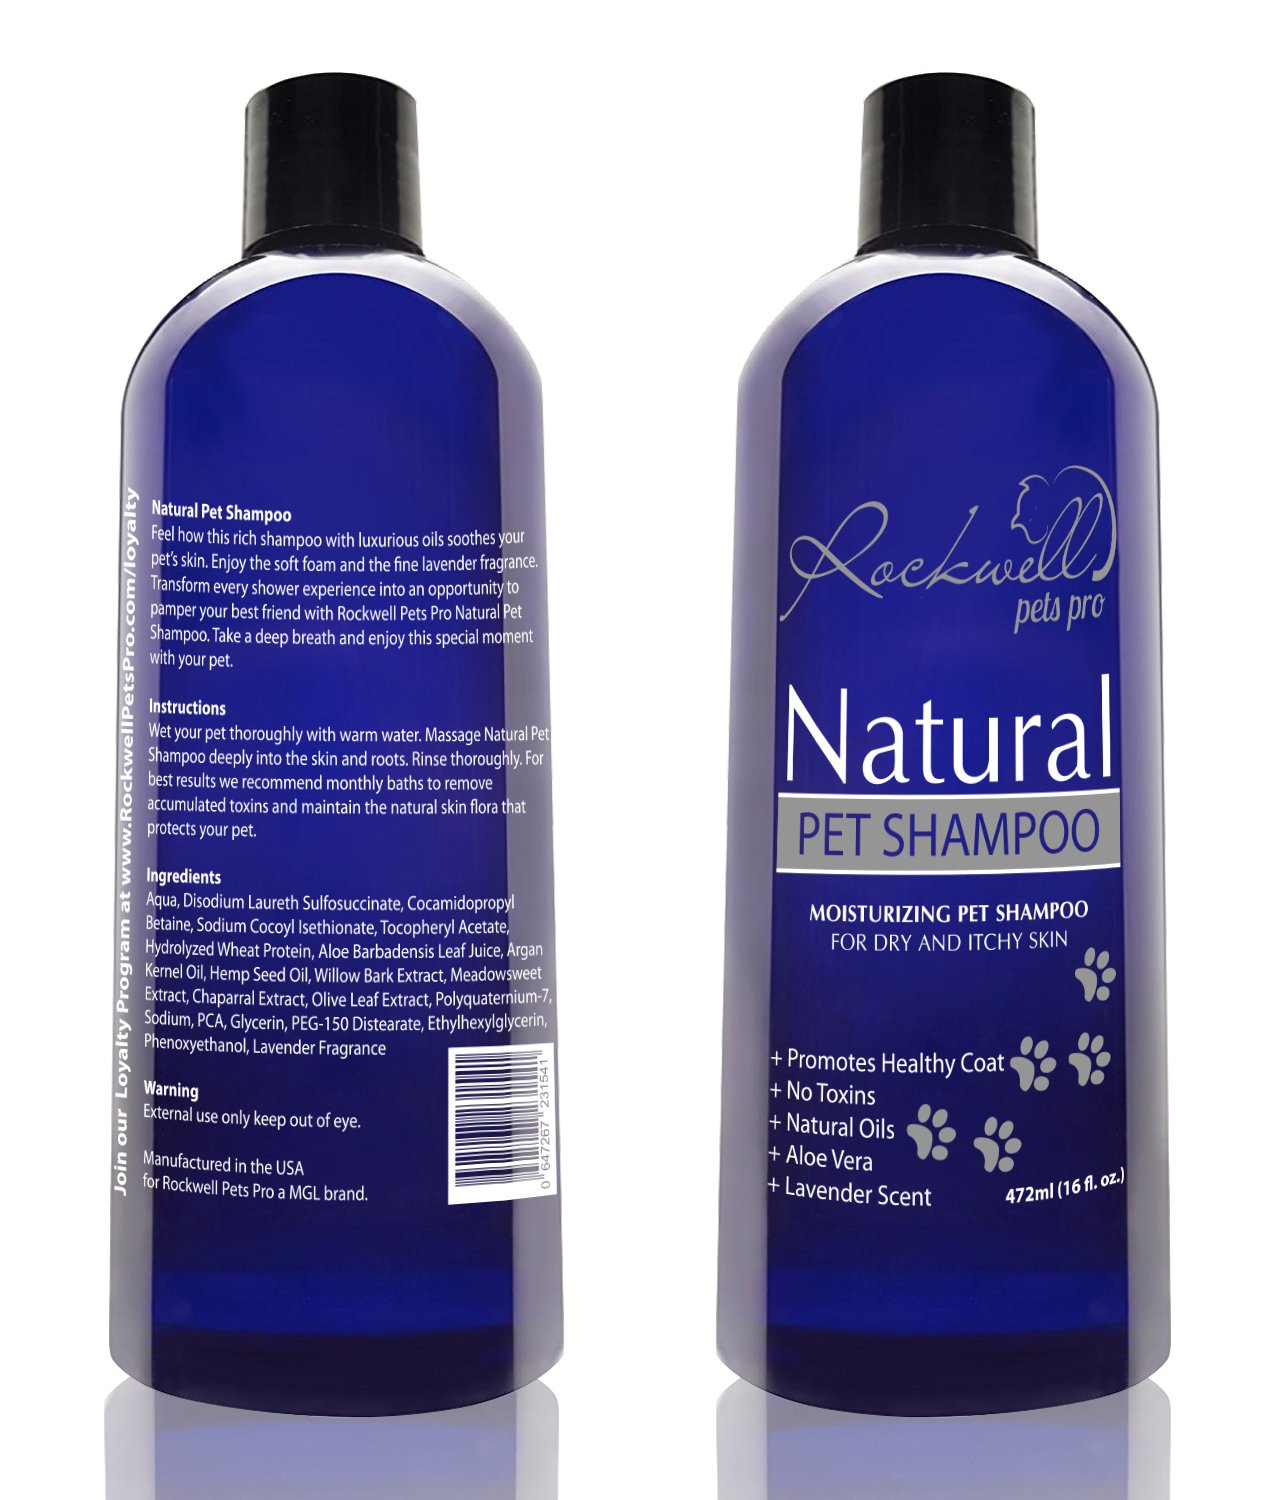 Natural Dog Shampoo for dry and itchy skin made in the USA (16 fl. oz)